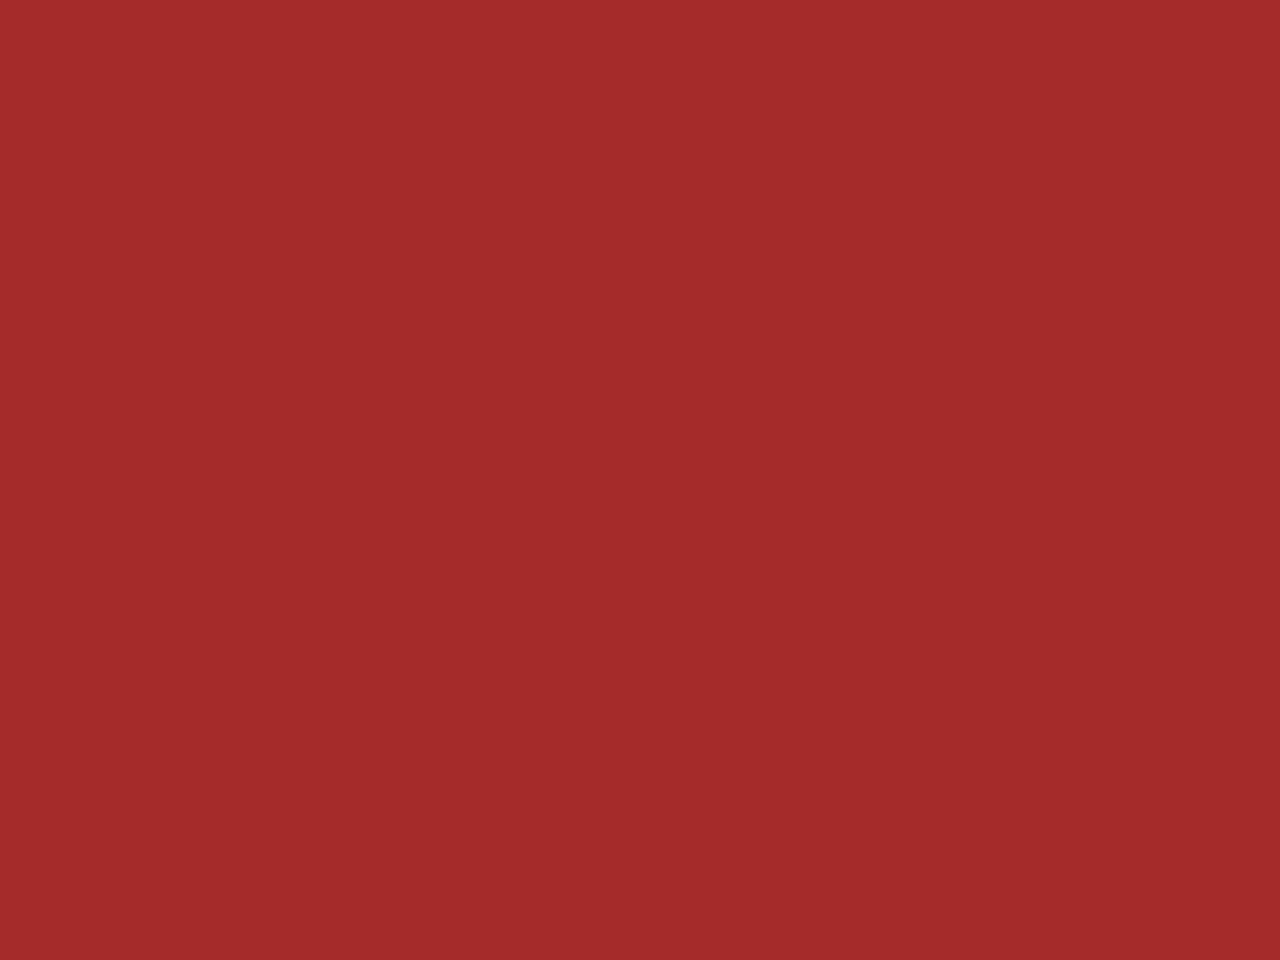 1280x960 Red-brown Solid Color Background